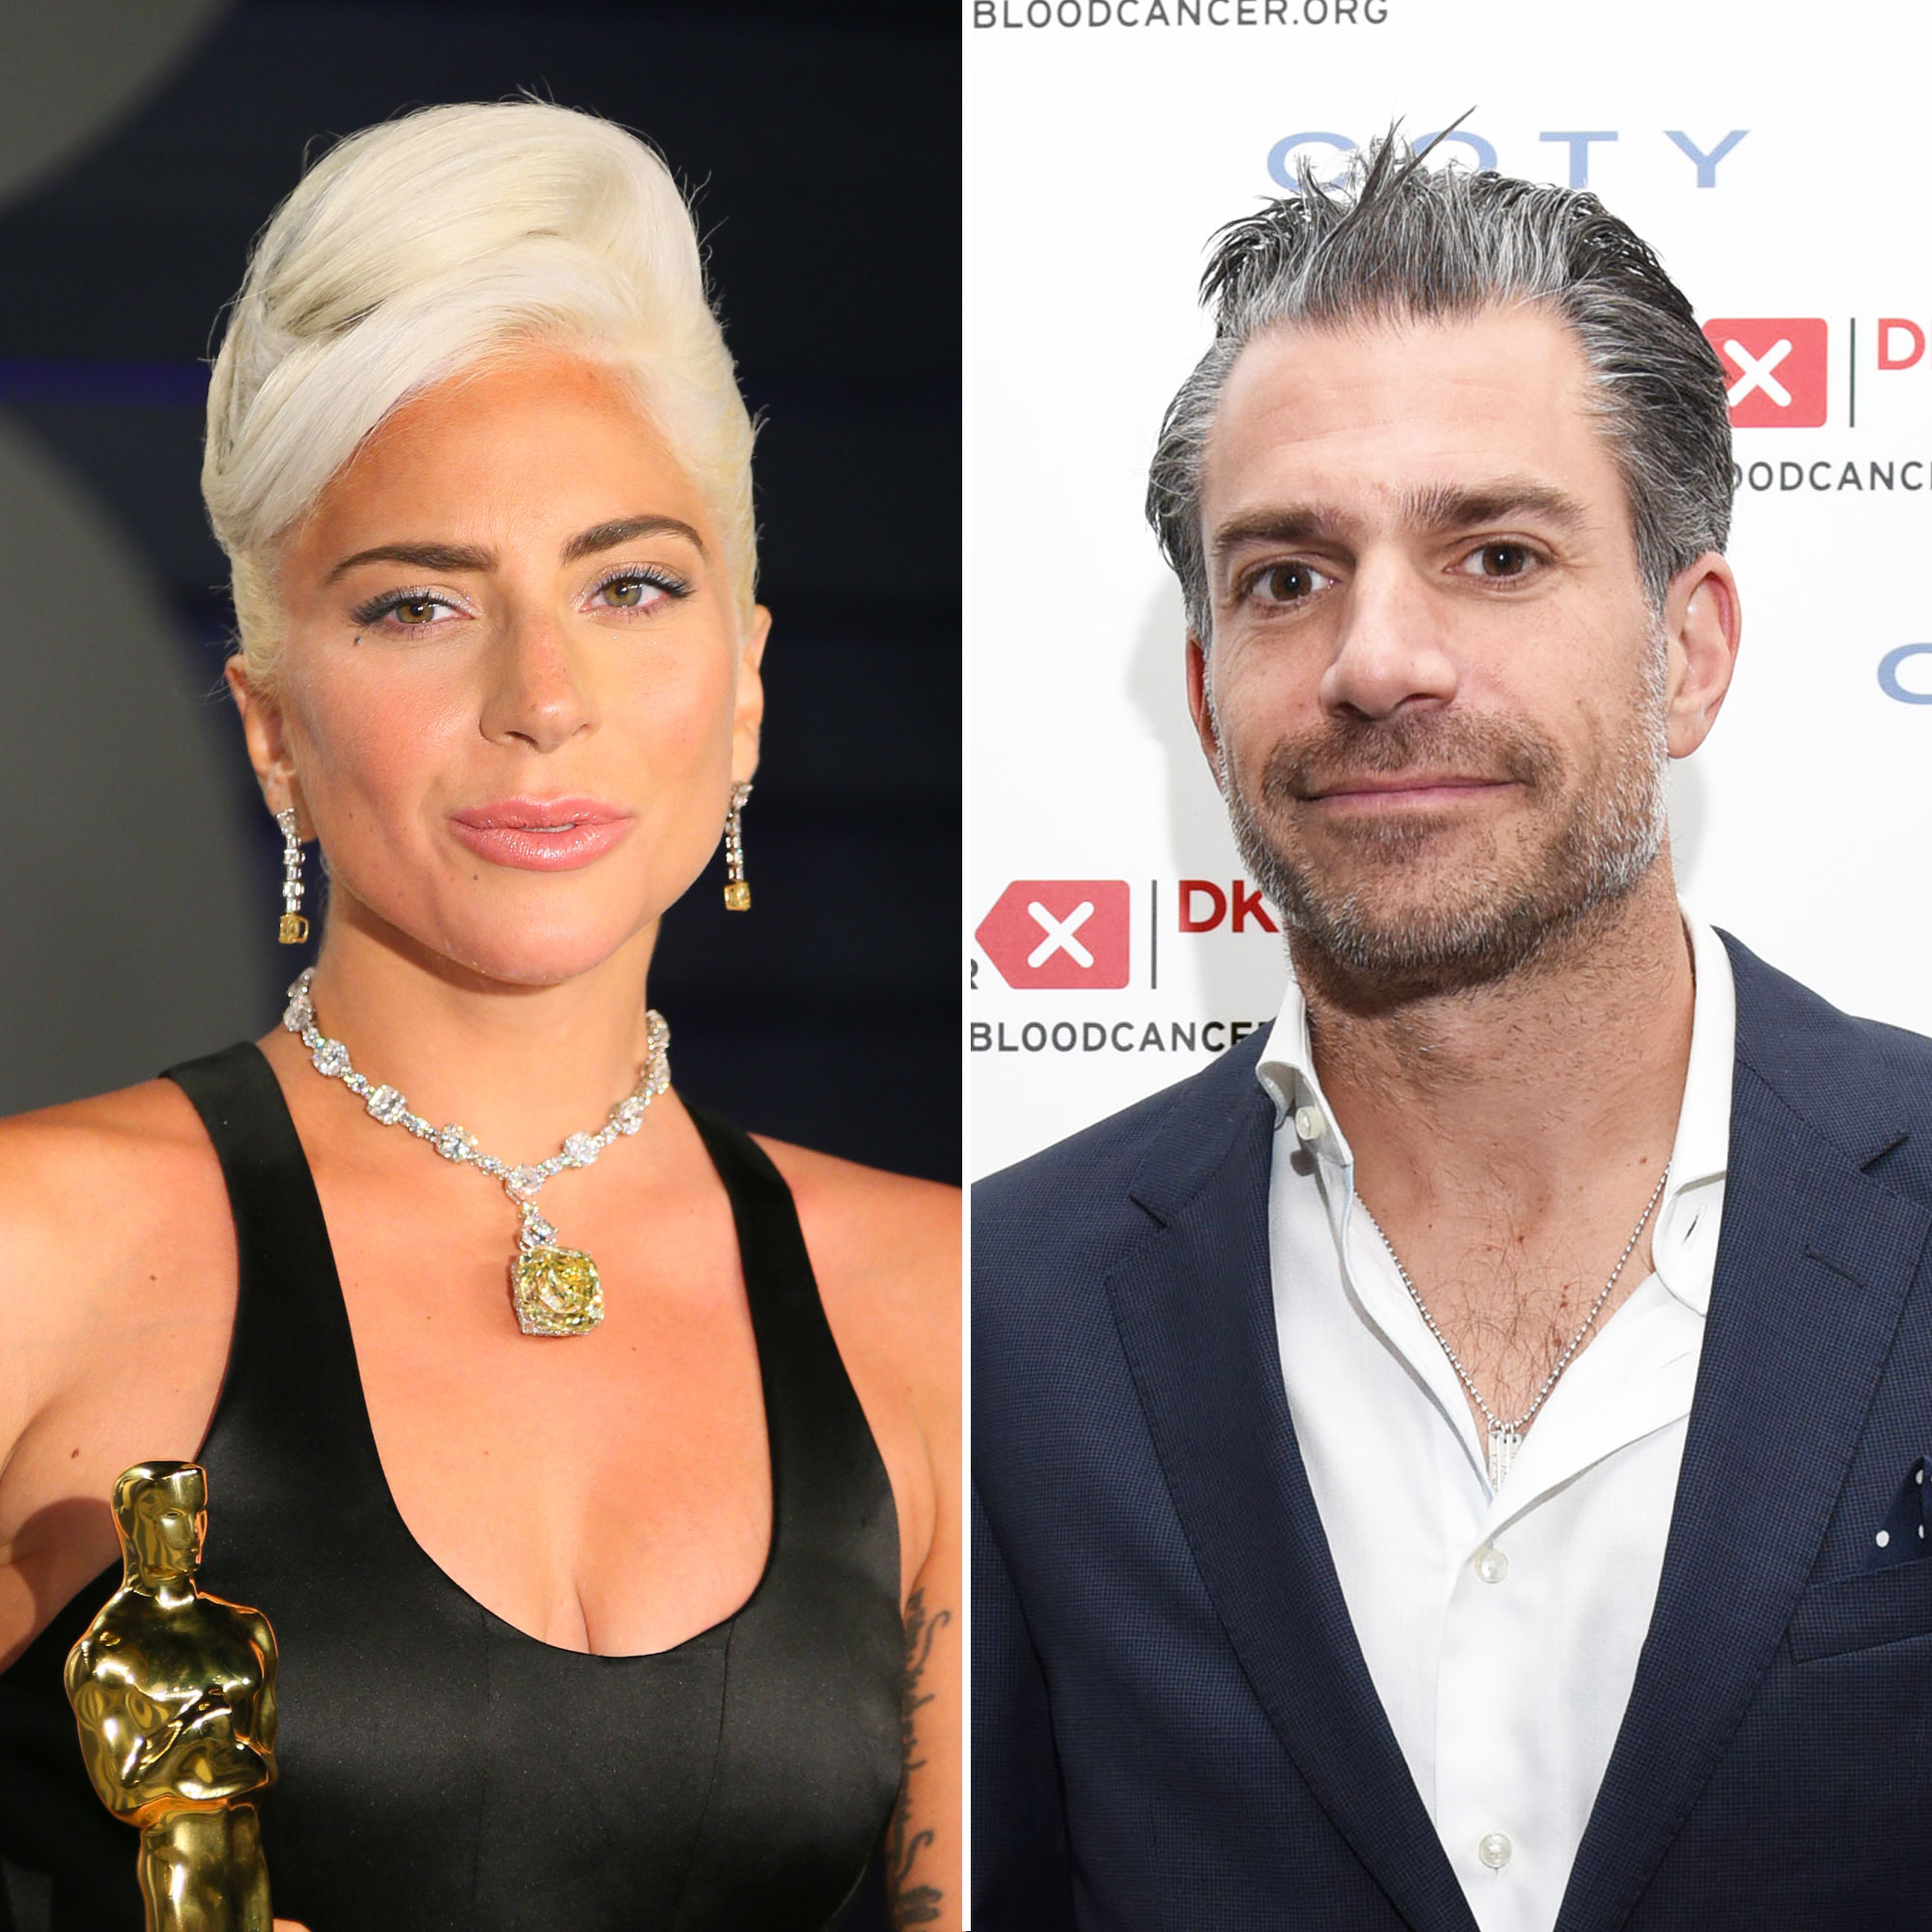 """Lady Gaga and Christian Carino - An insider told Us exclusively that Carino """"didn't treat Gaga very well toward the end of their relationship,"""" while a second source revealed that the actress """"was the one who broke things off ."""" She has since been spending time with new pal Jeremy Renner ."""